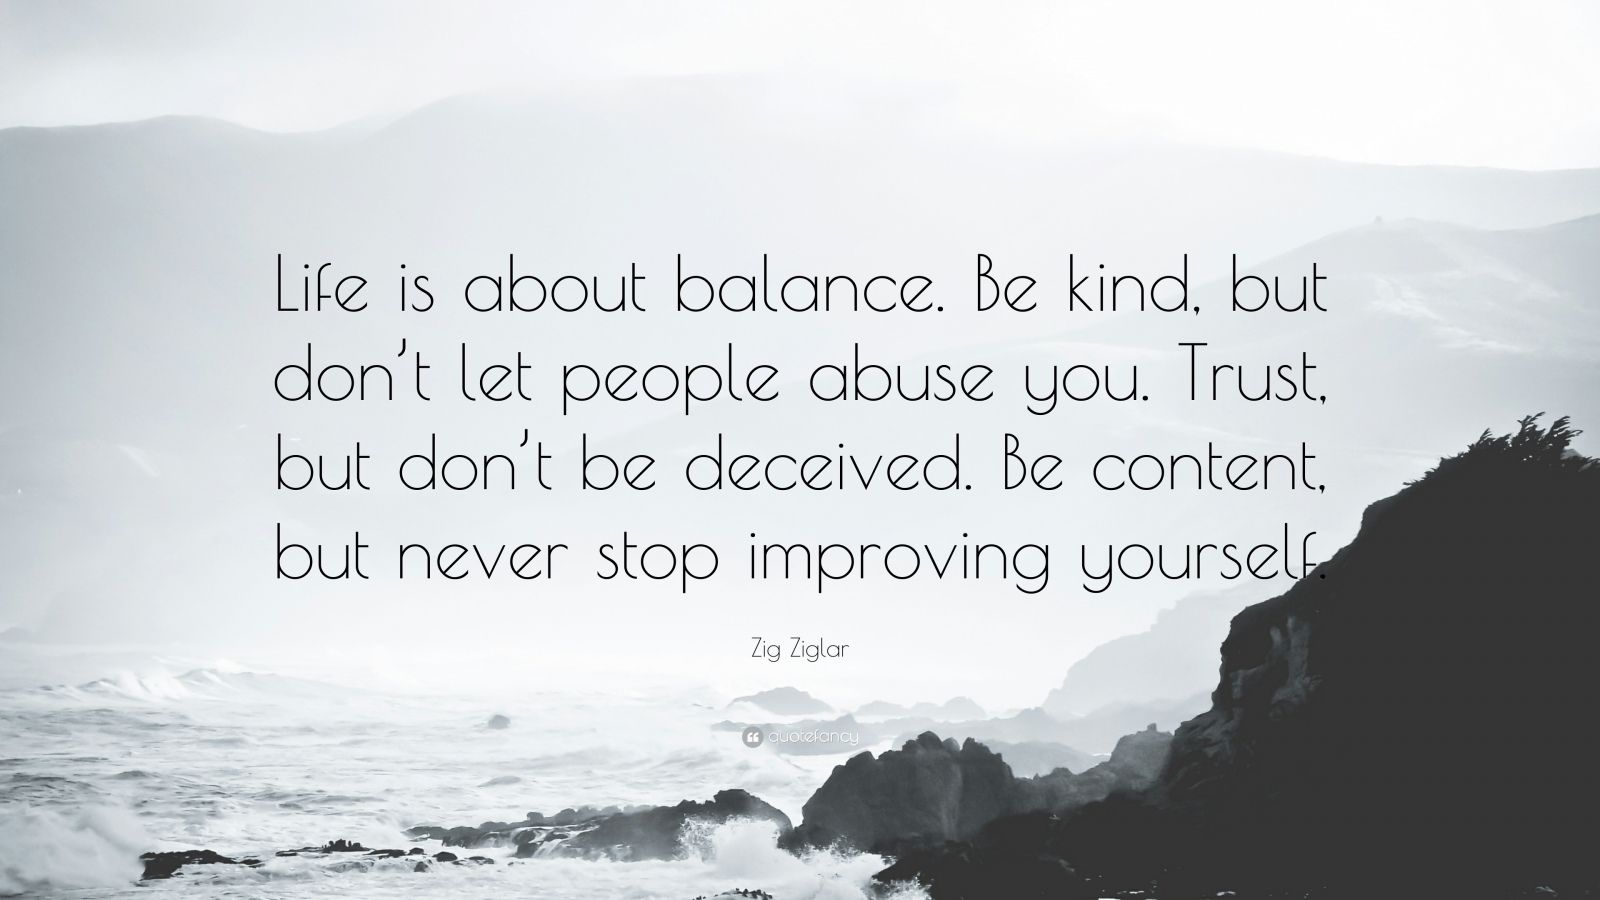 "Quotes About Balance: ""Life is about balance. Be kind, but don't let people abuse you. Trust, but don't be deceived. Be content, but never stop improving yourself."" — Zig Ziglar"